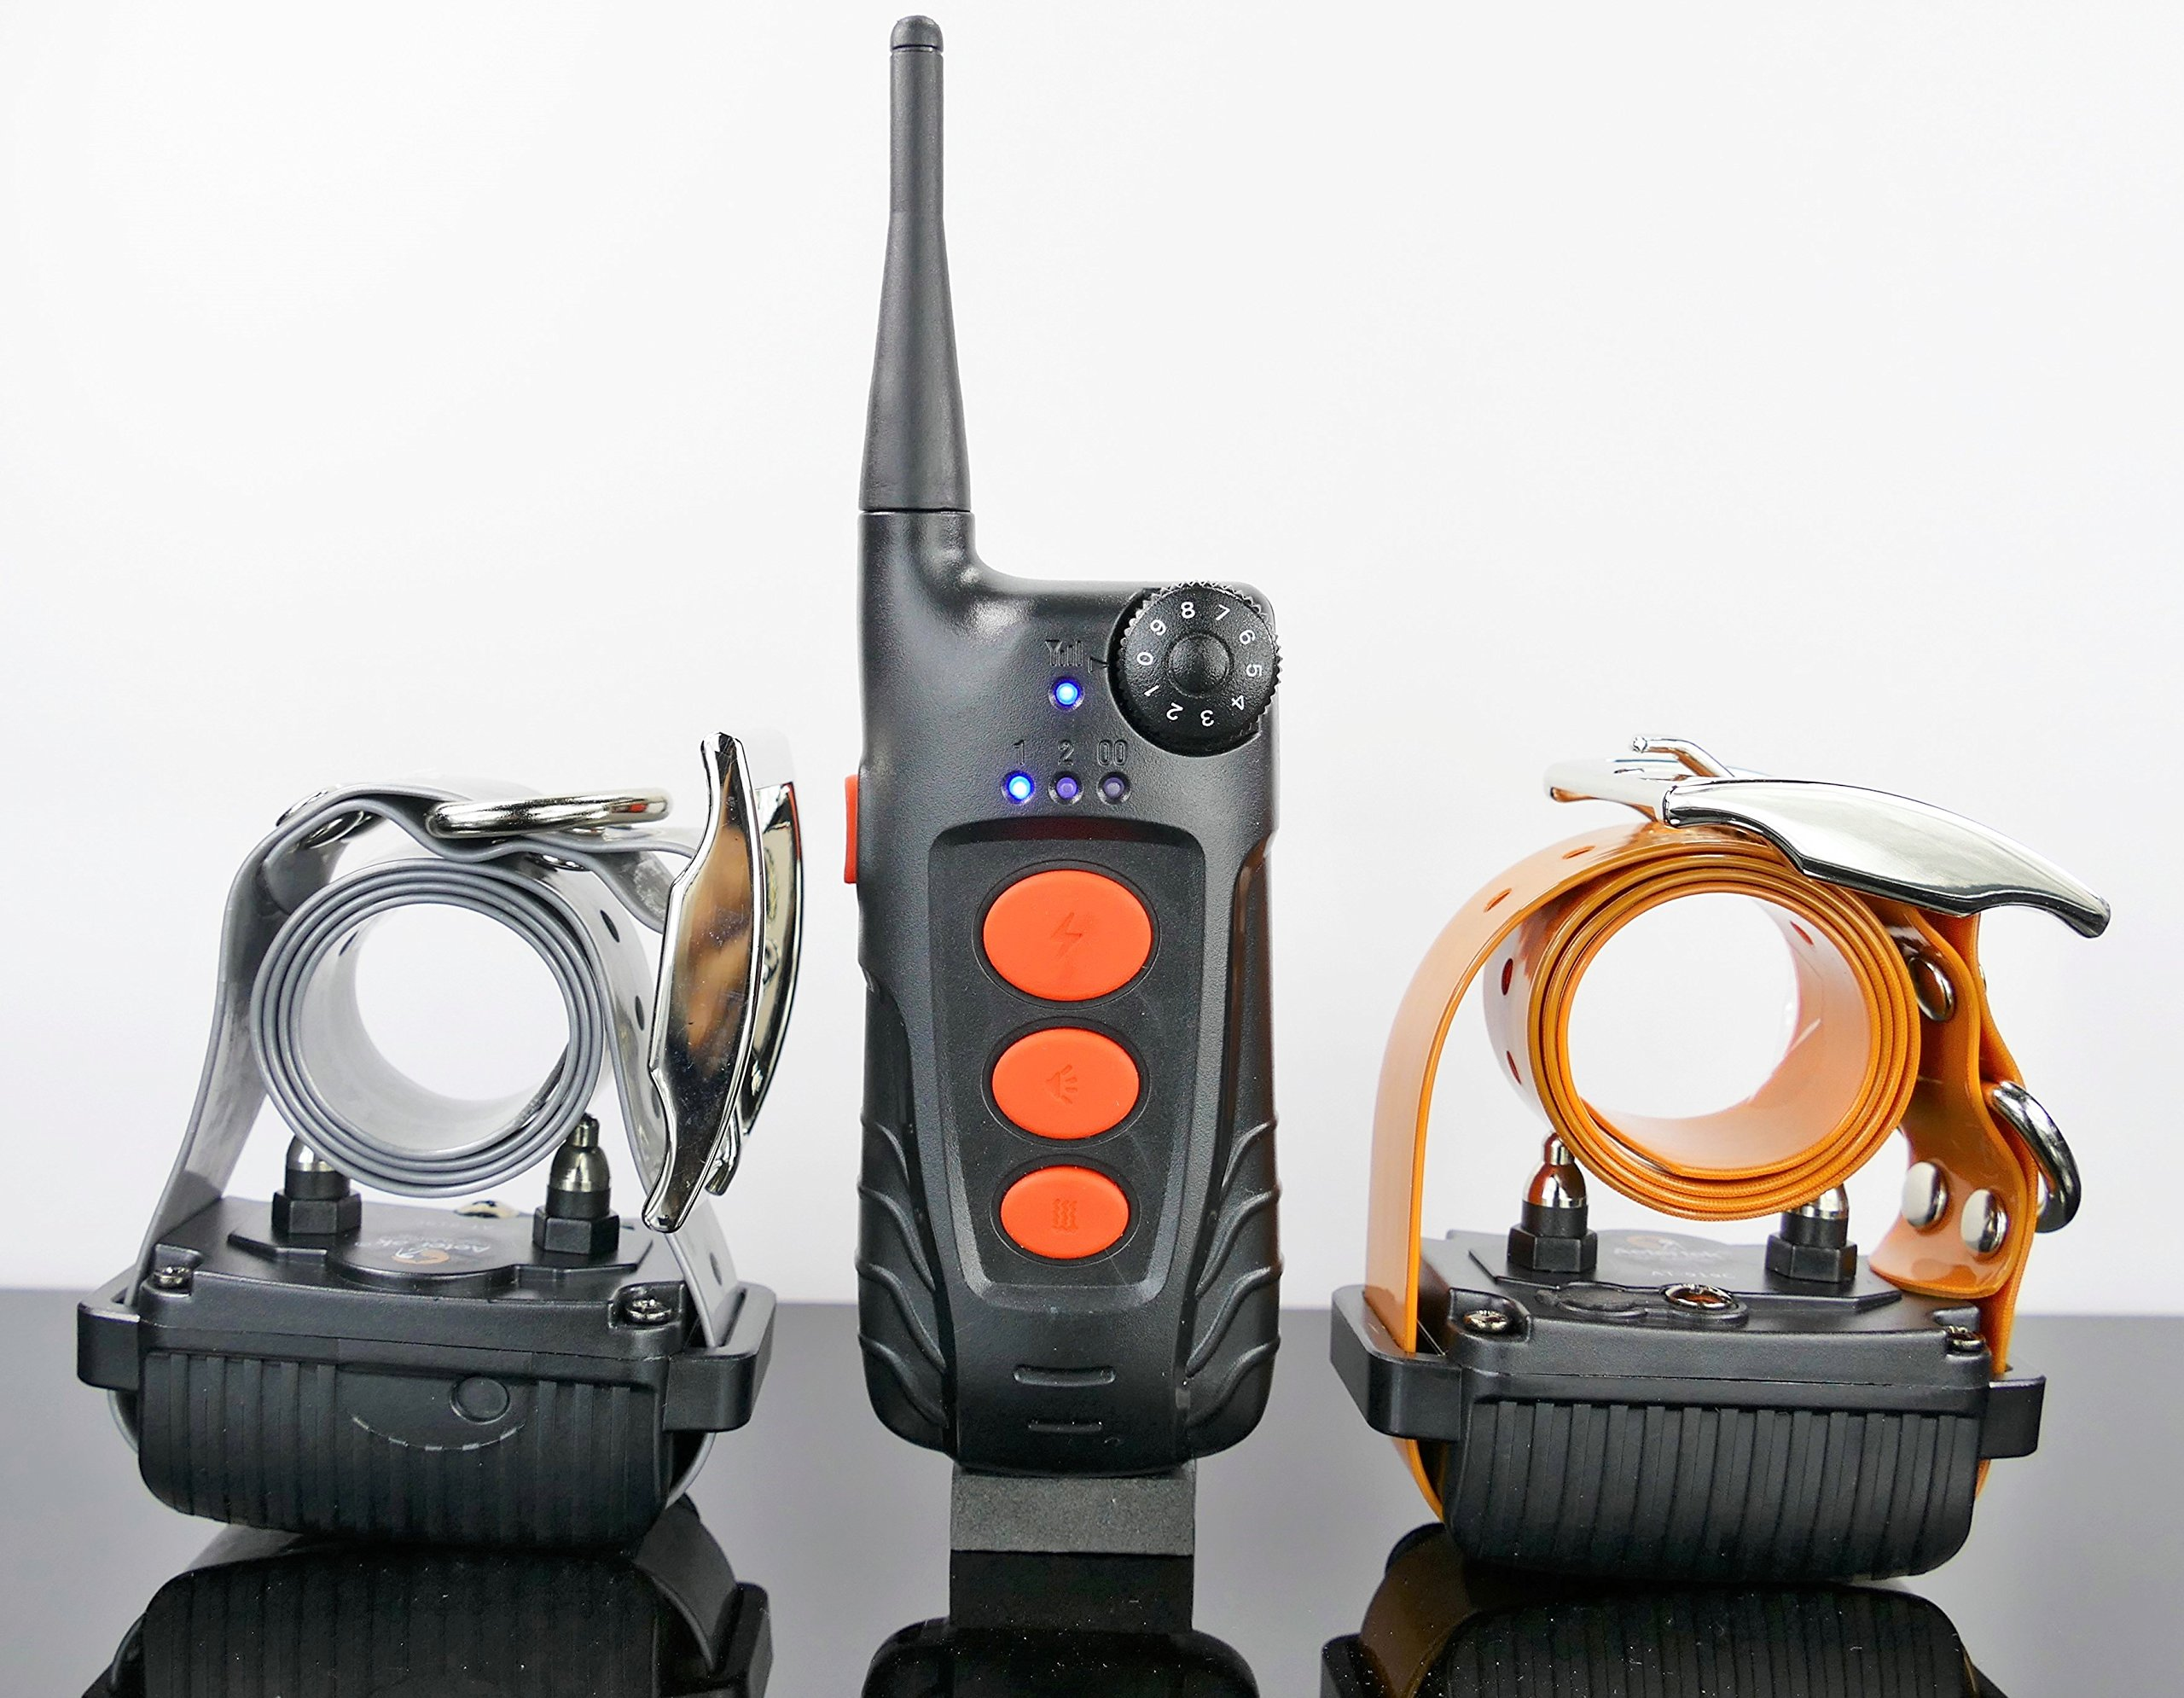 Aetertek 600 YARD REMOTE DOG TRAINER WITH WATERPROOF RECHARGEABLE DOG TRAINING SHOCK COLLAR TRAINER WITH AUTO ANTI-BARK (AT-918C-2 DOG SET) by Aetertek